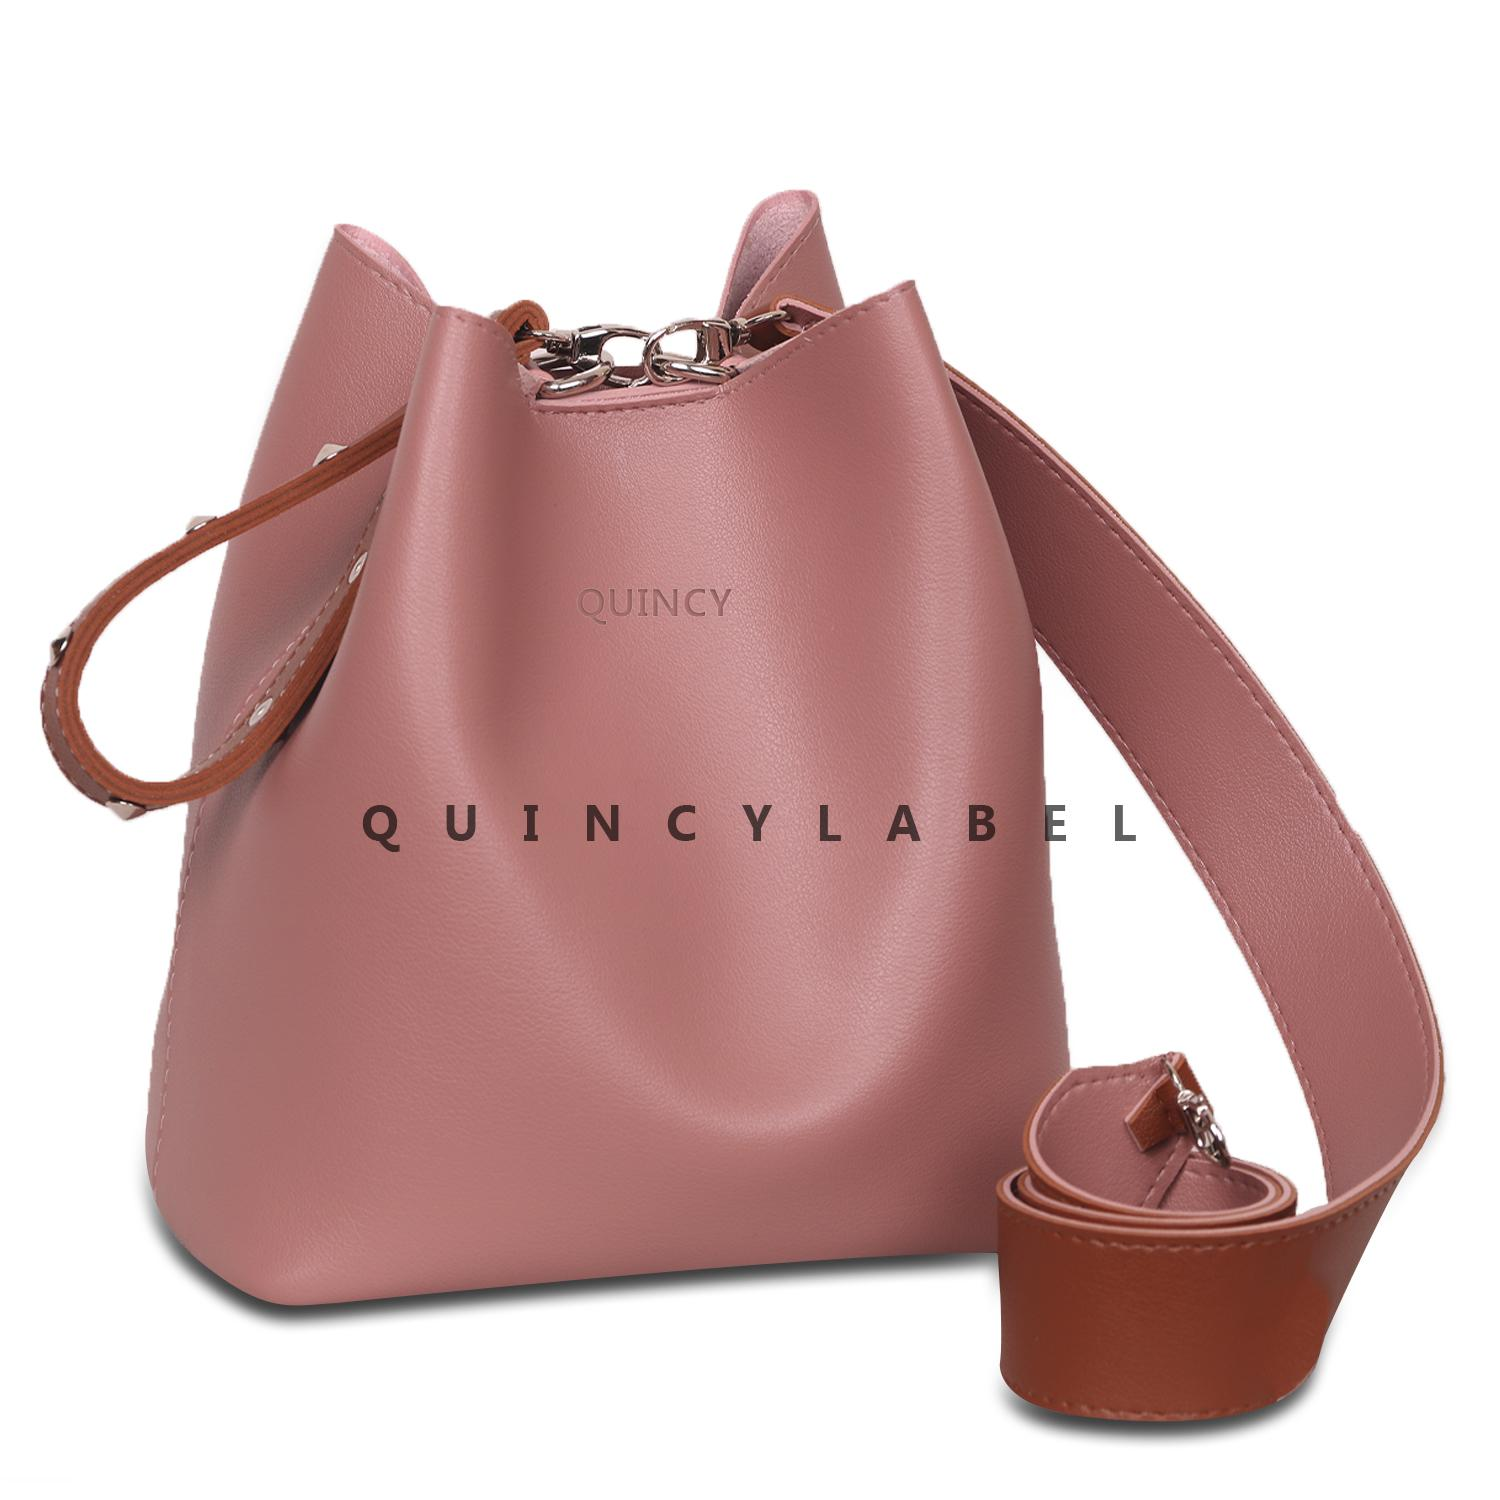 Quincy Label Tas Sling Bag Korean Fashion Aulia Hand Bag Tas Fashion ... aebc5be5a4